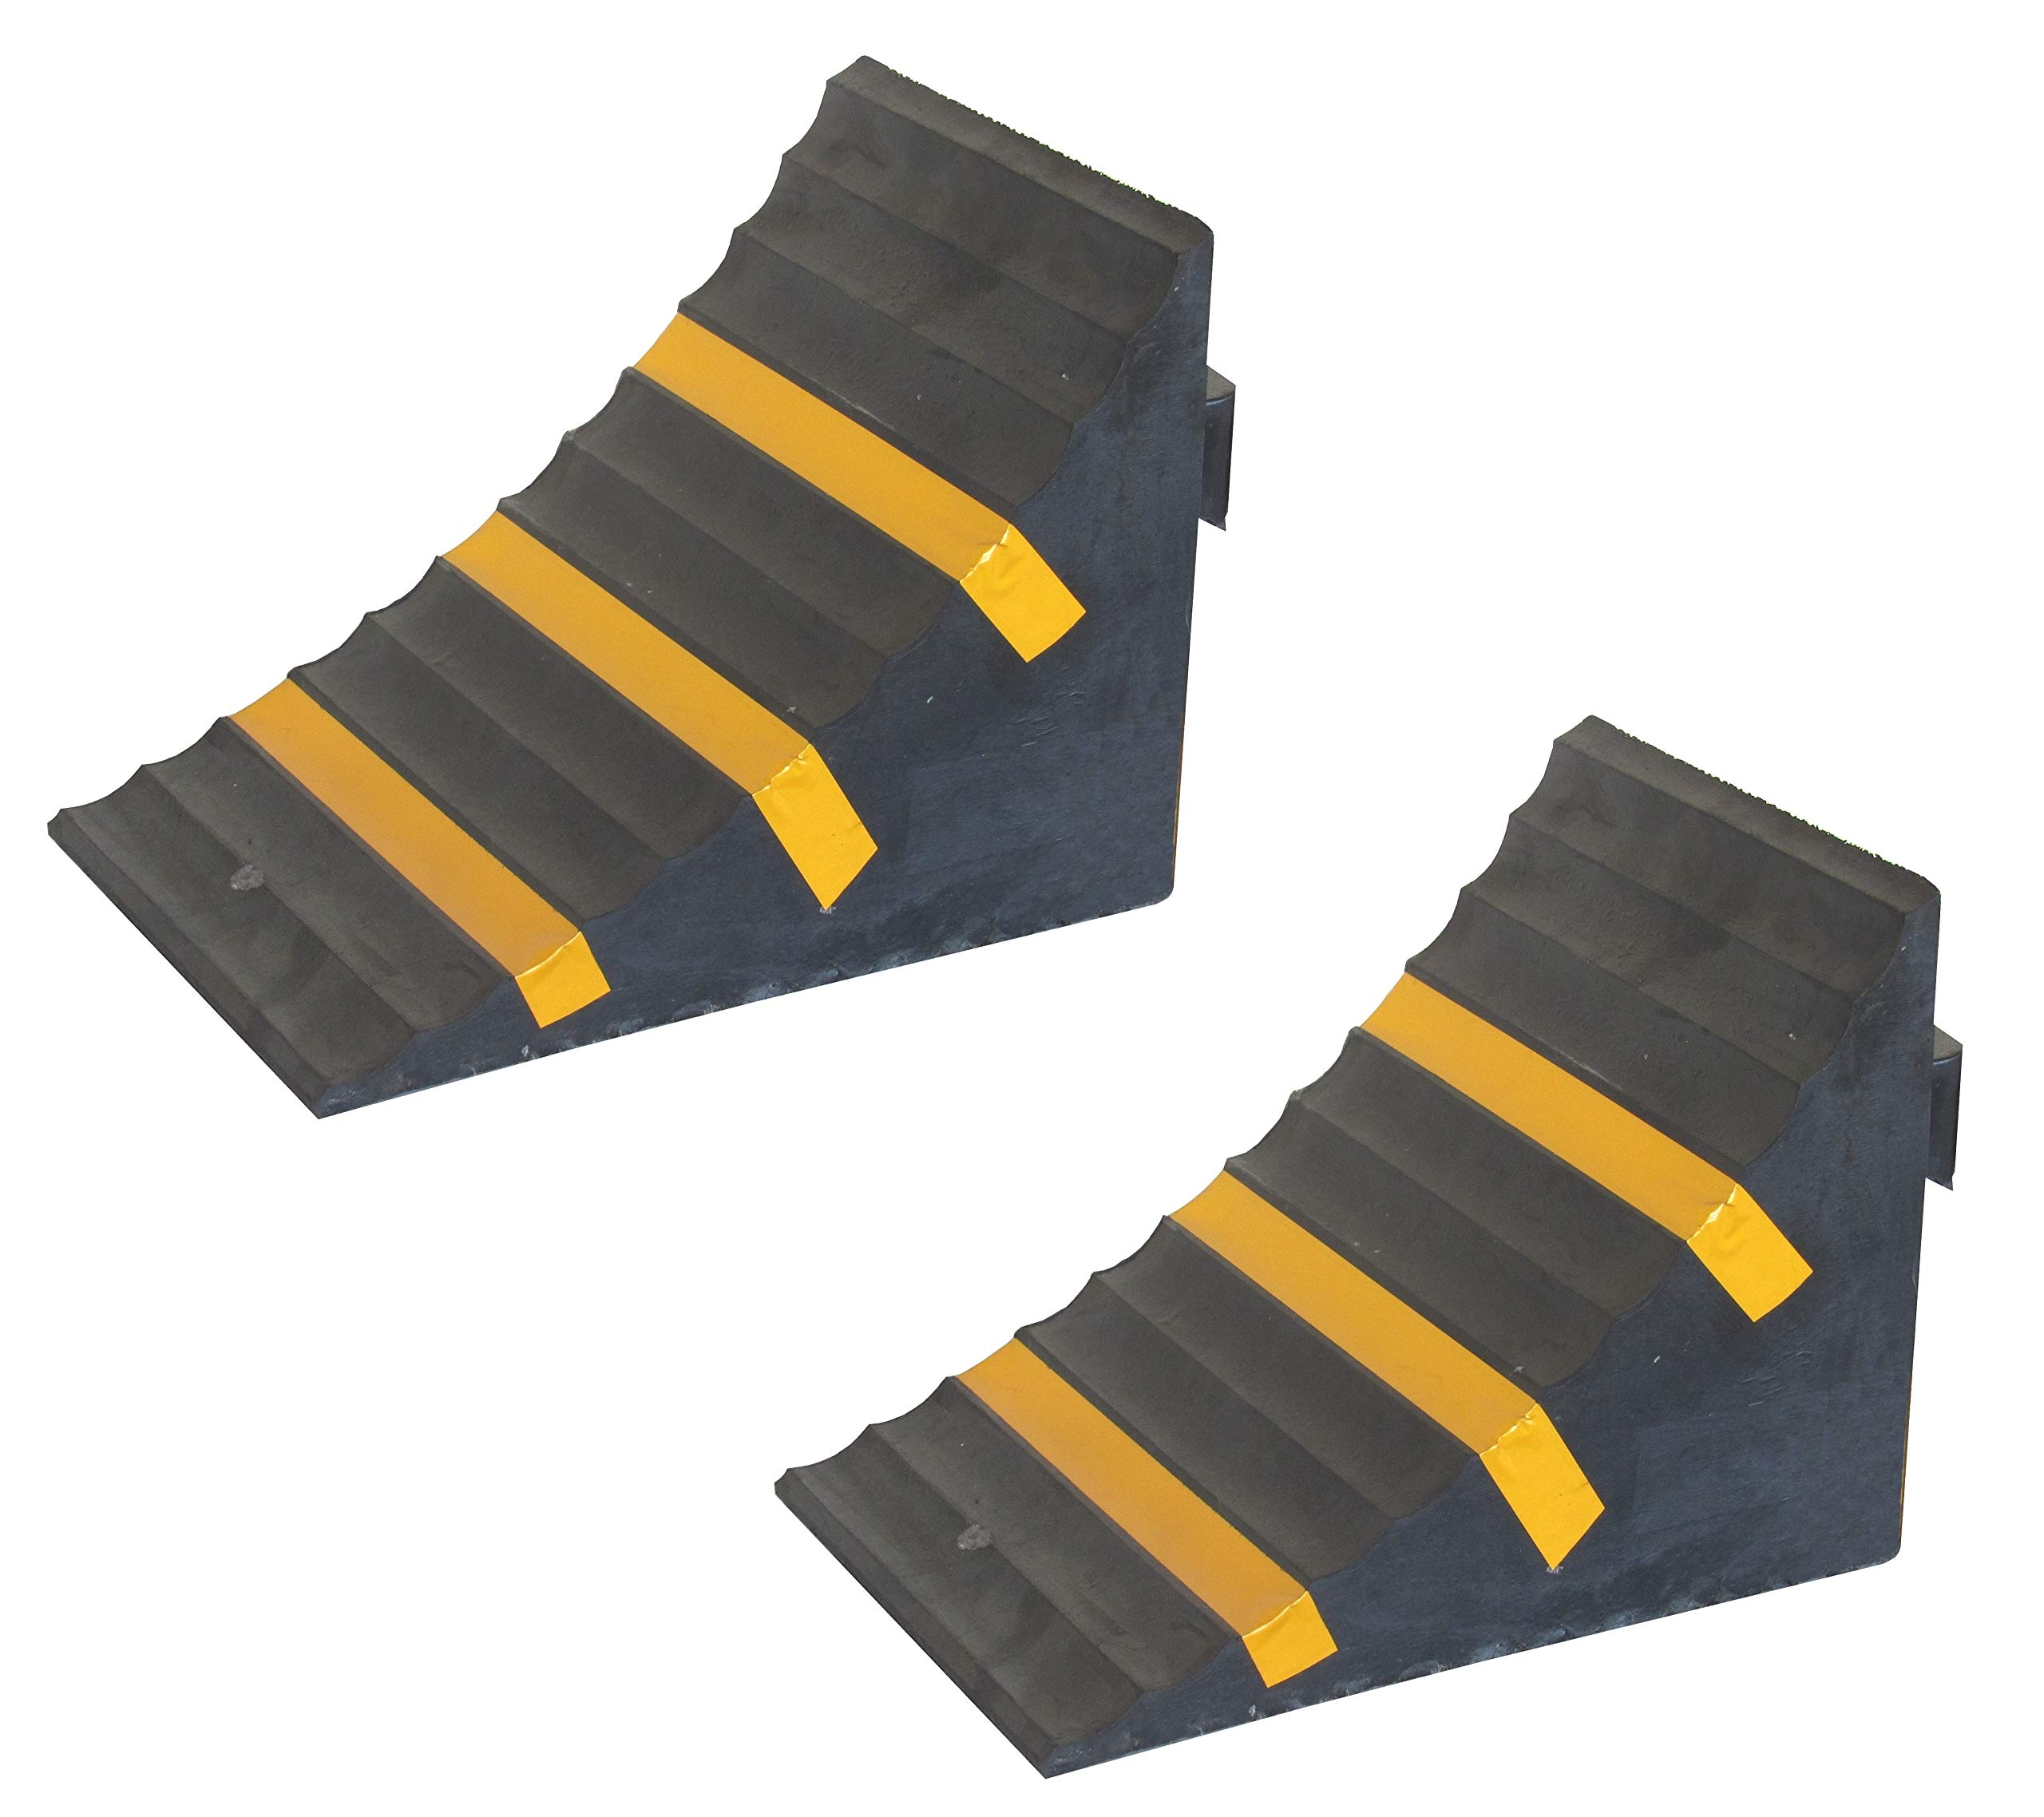 Rubber Wheel Chock, Heavy-Duty, with Handle, Blocks the Tires of Cars, Trailers, RVs, Trucks, Camper Vans and Caravans, Black Color with Yellow Strips, Dimensions 10.0'' L x 6.3'' W x 7.3'' H (Pack of 2) by SNS SAFETY LTD